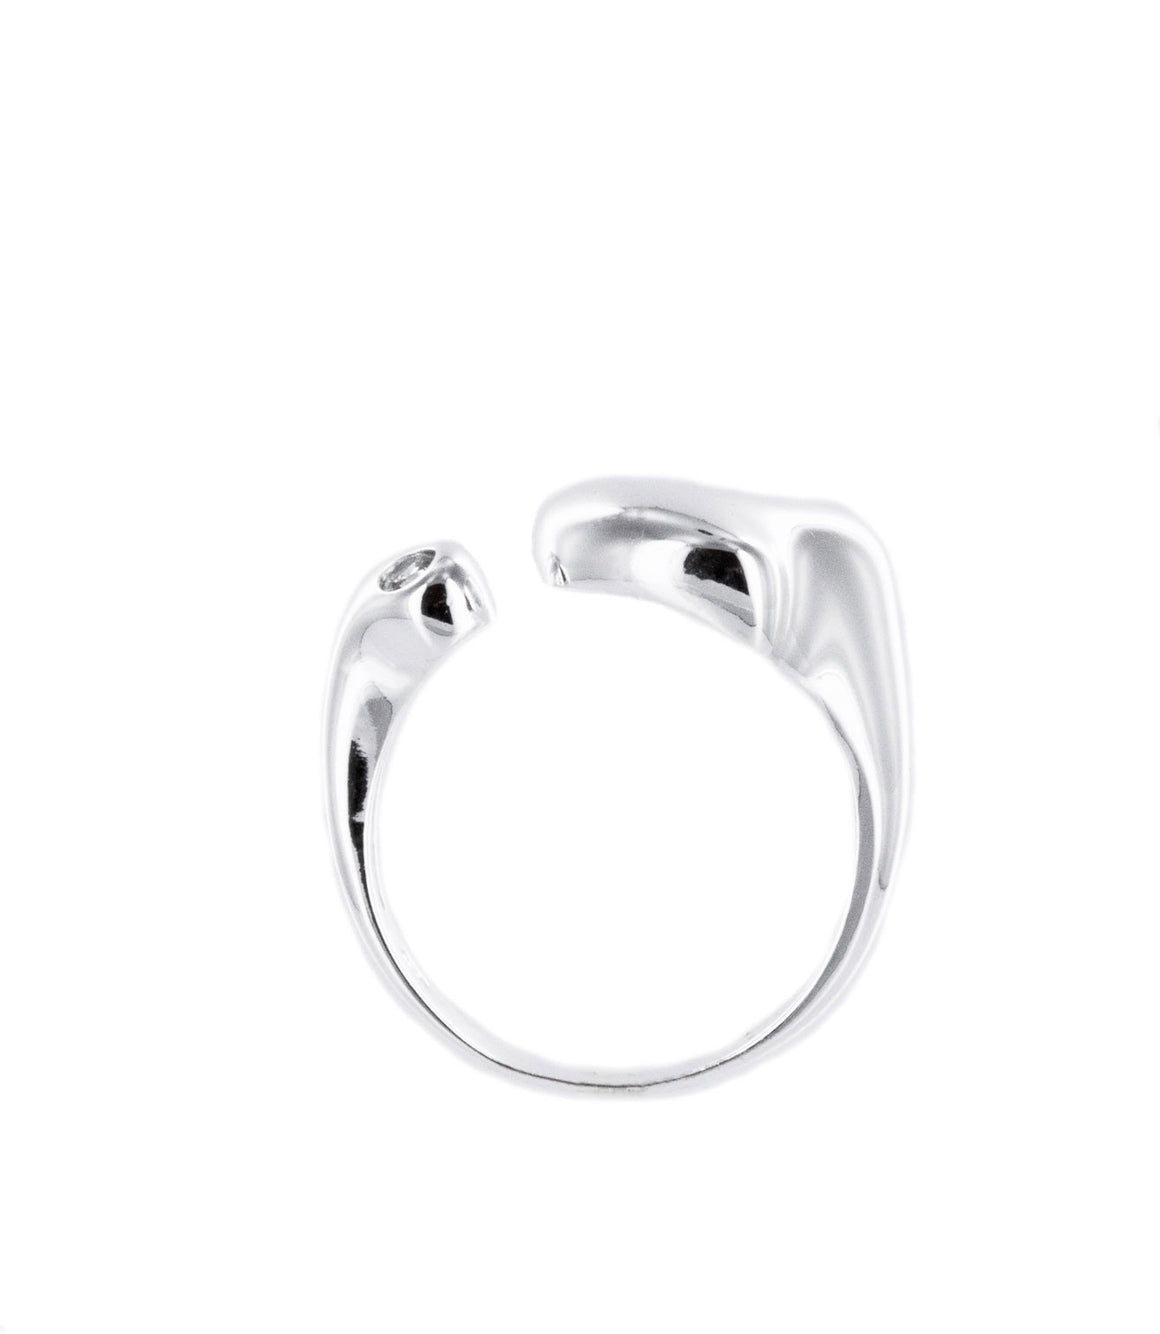 Precious polished sterling silver heart wraparound ring.